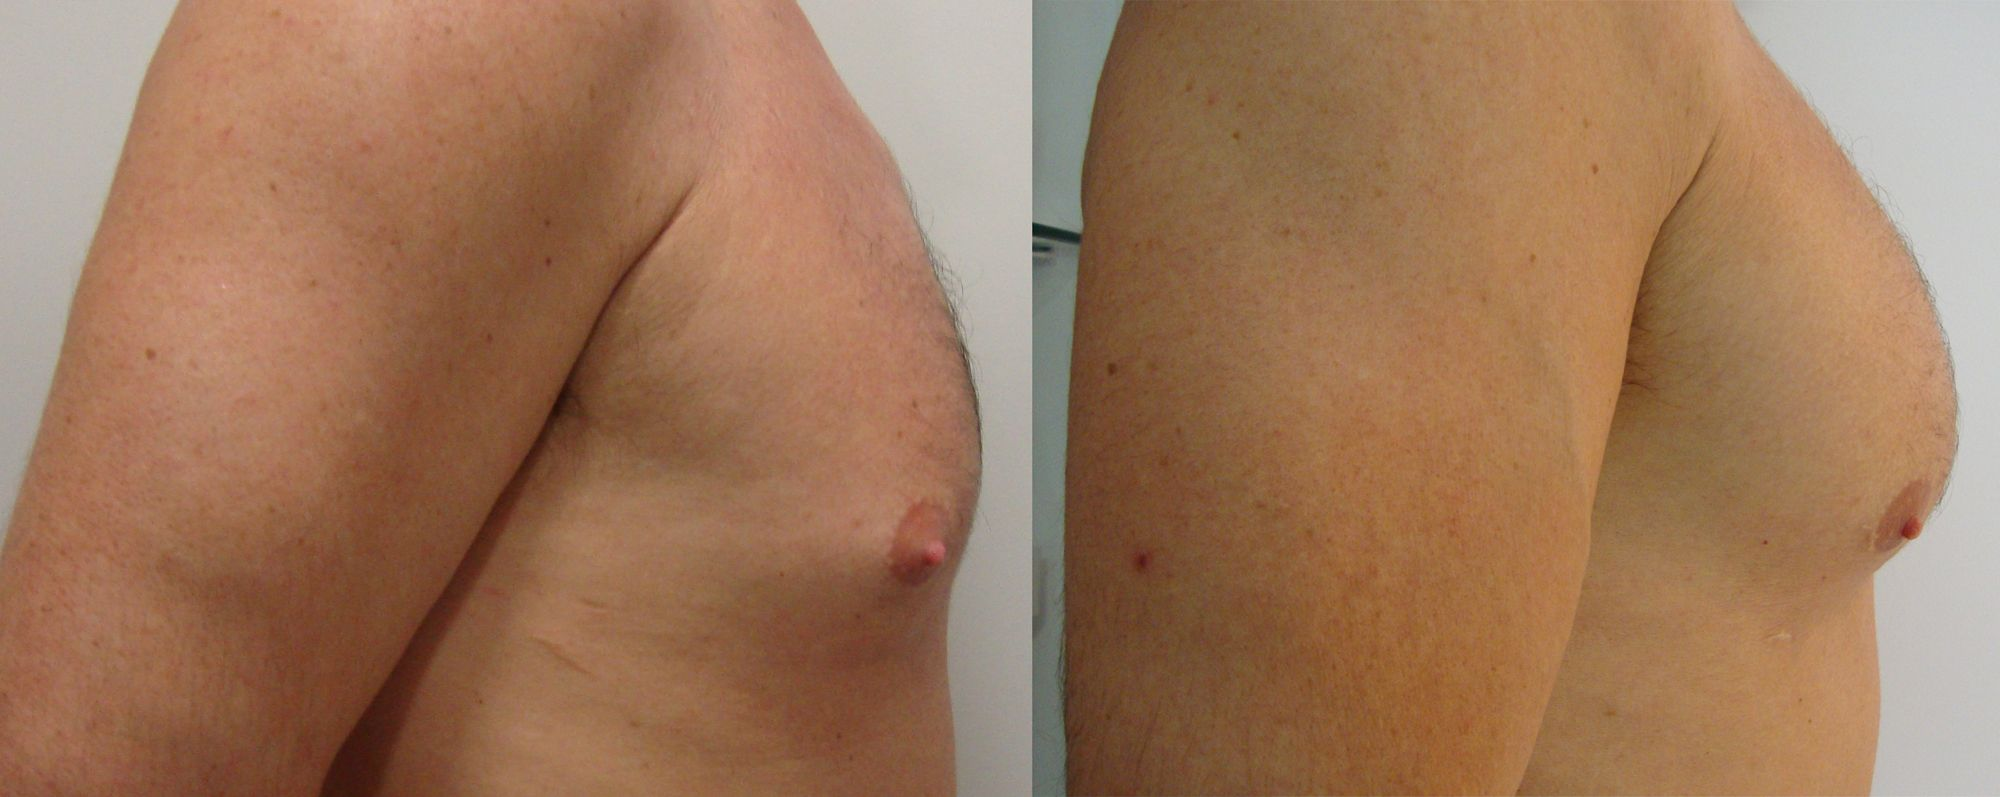 Pectoral prosthesis - Picture 4